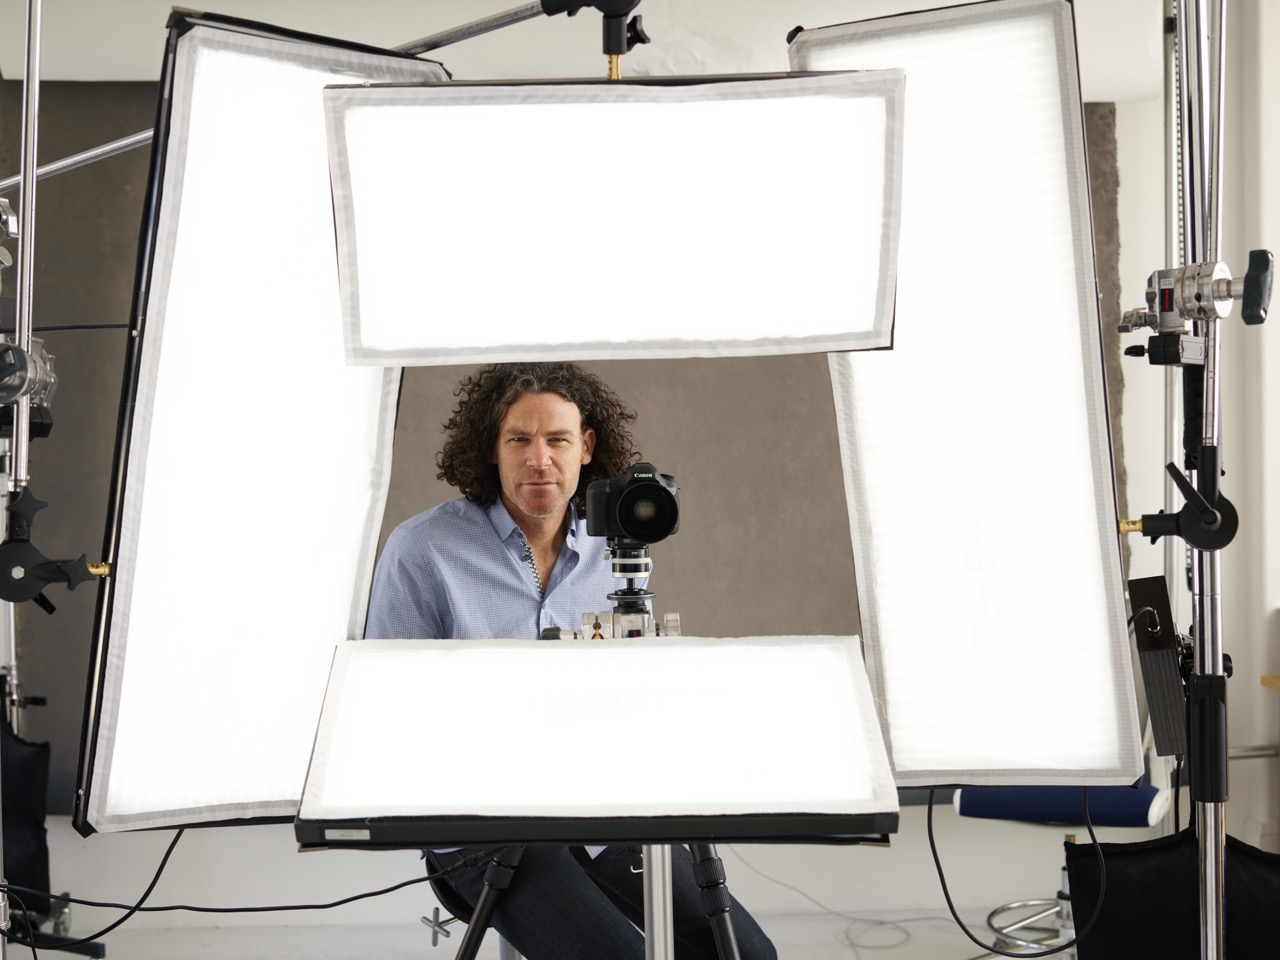 Wedding Photography Lighting Setup: Five Tips For Taking Better Headshot Photos From Peter